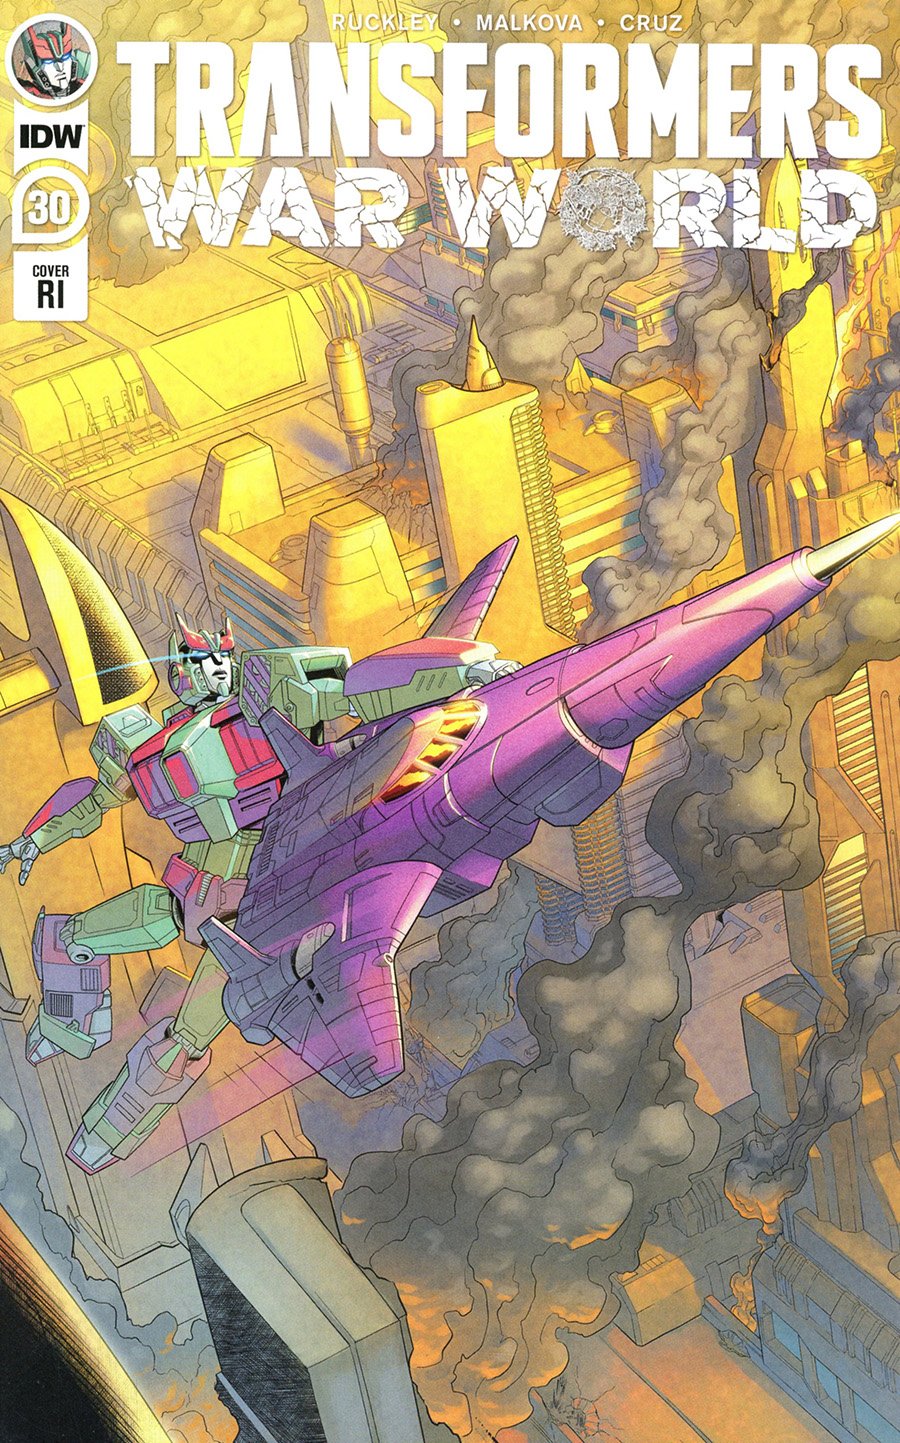 Transformers Vol 4 #30 Cover C Incentive Blacky Shepherd Variant Cover